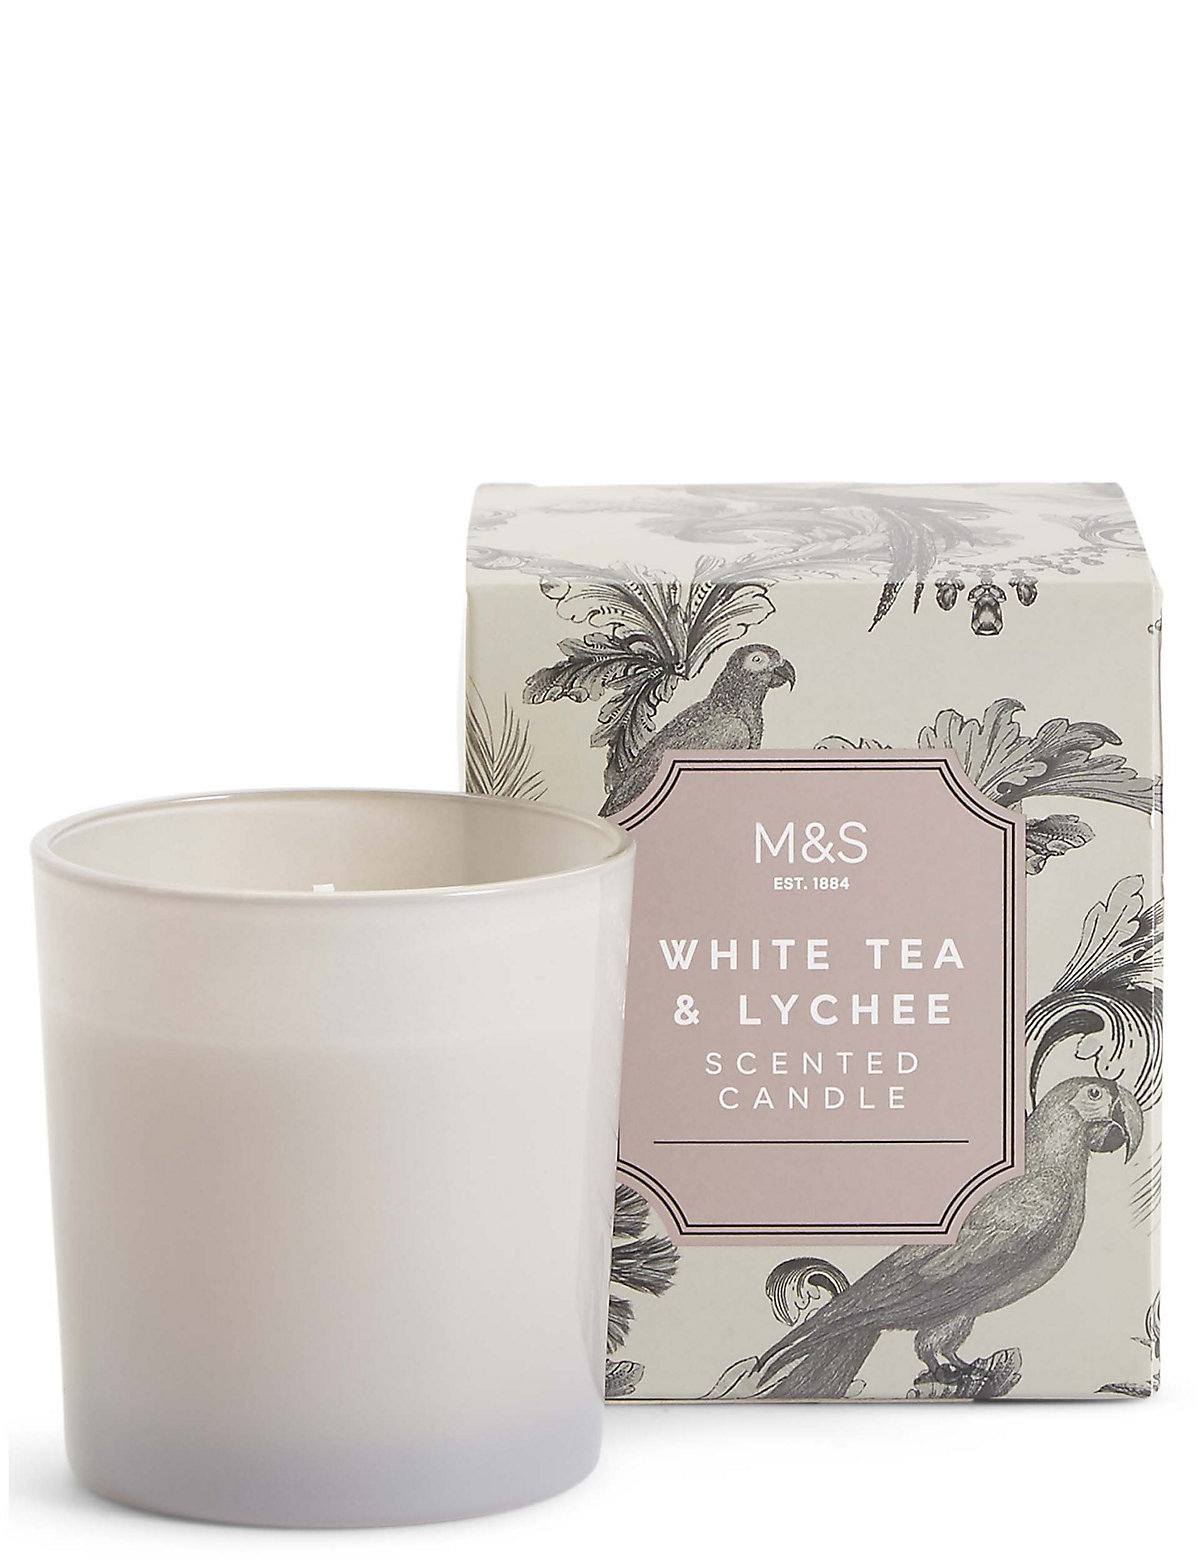 White Tea & Lychee Scented Candle